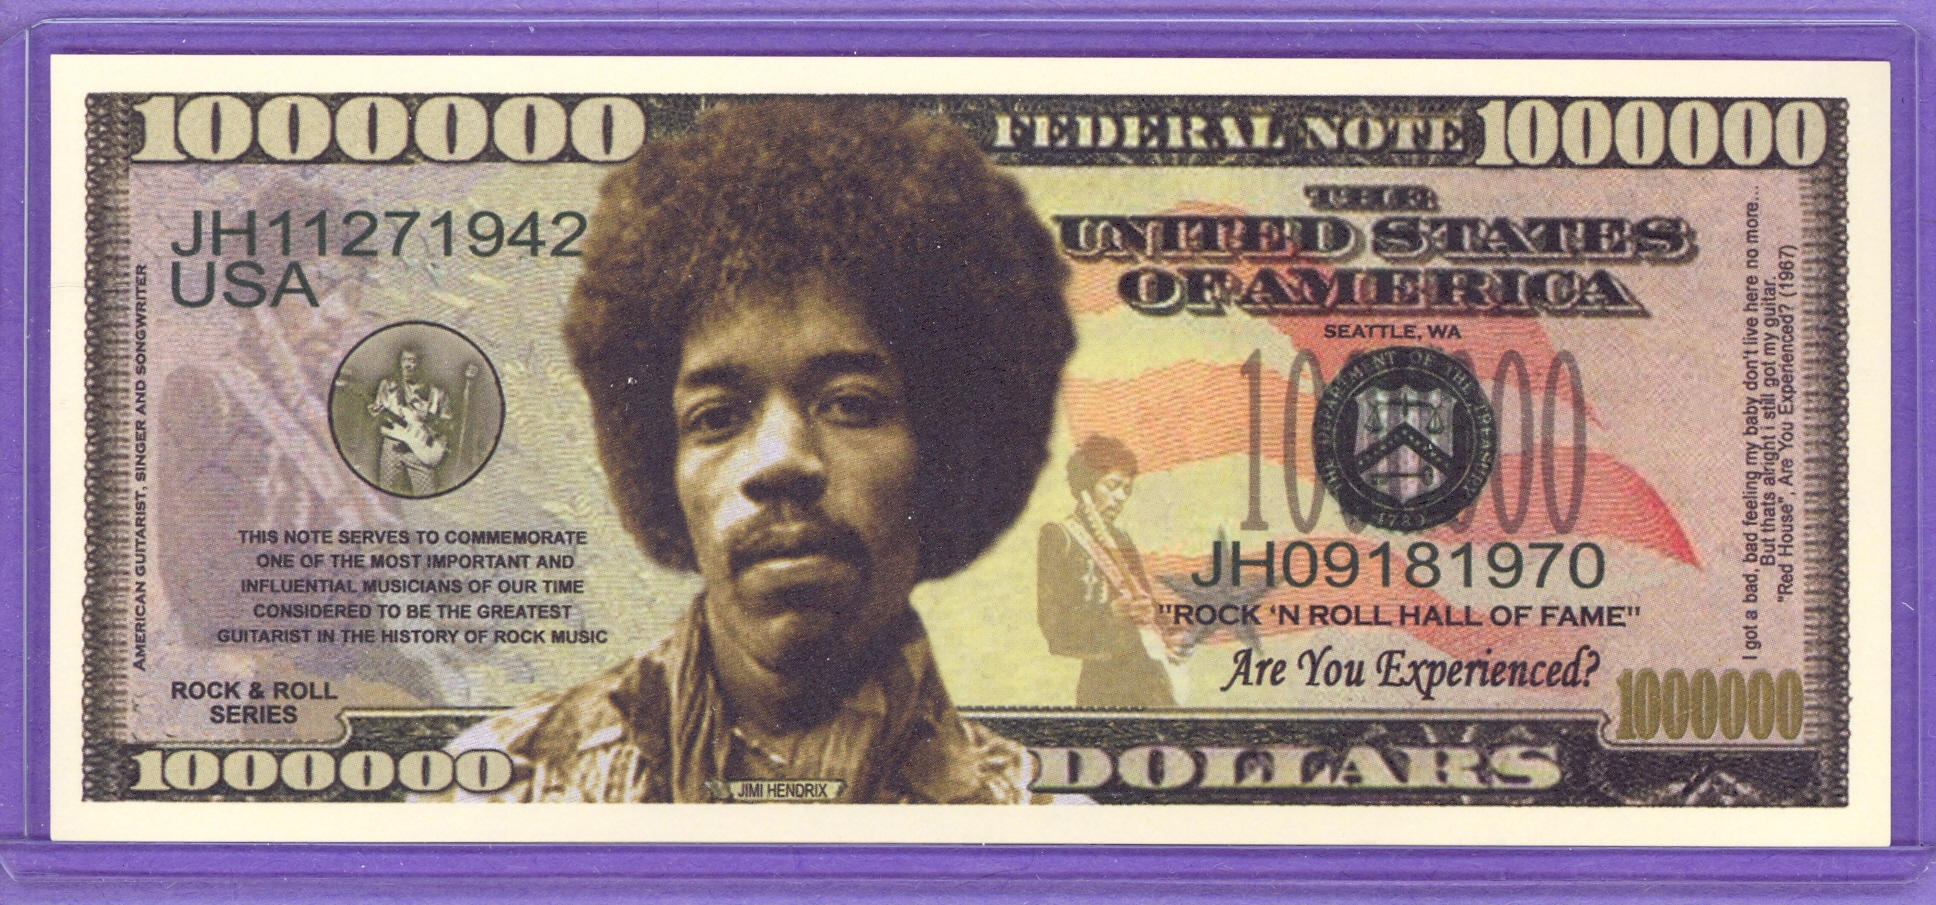 Jimi Hendrix $1,000,000 Novelty Note -Rock & Roll Series